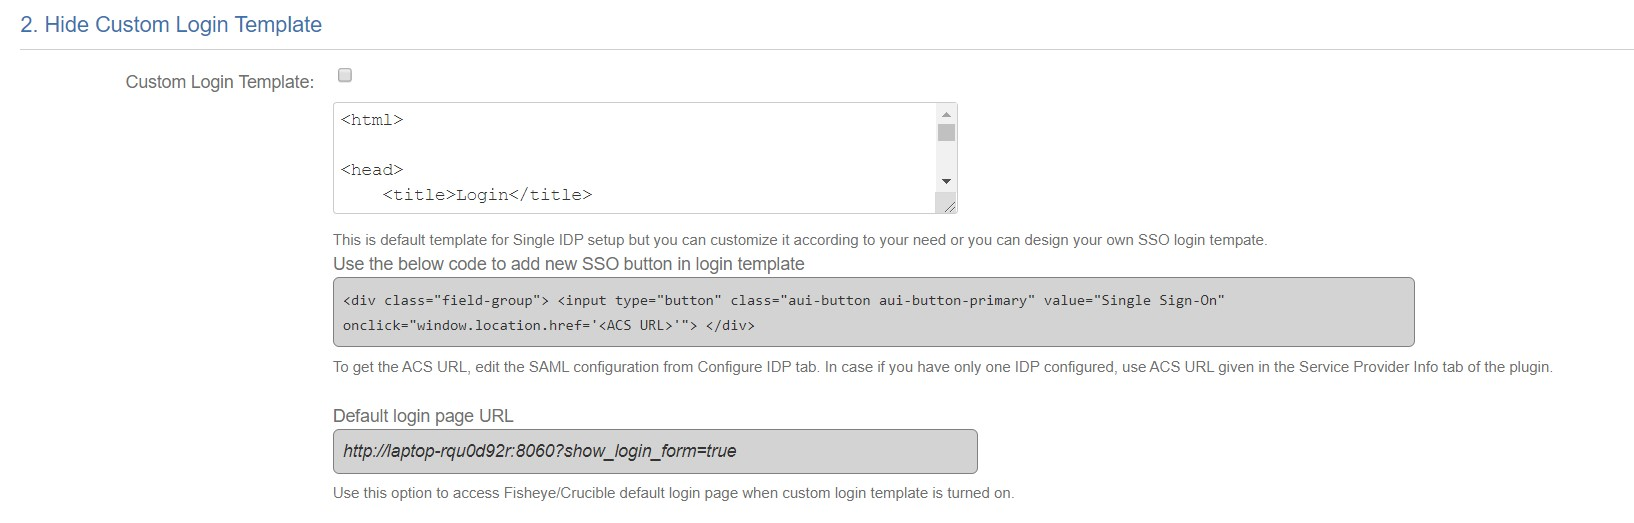 SAML Single Sign On (SSO) into Fisheye/Crucible, Custom Login template settings